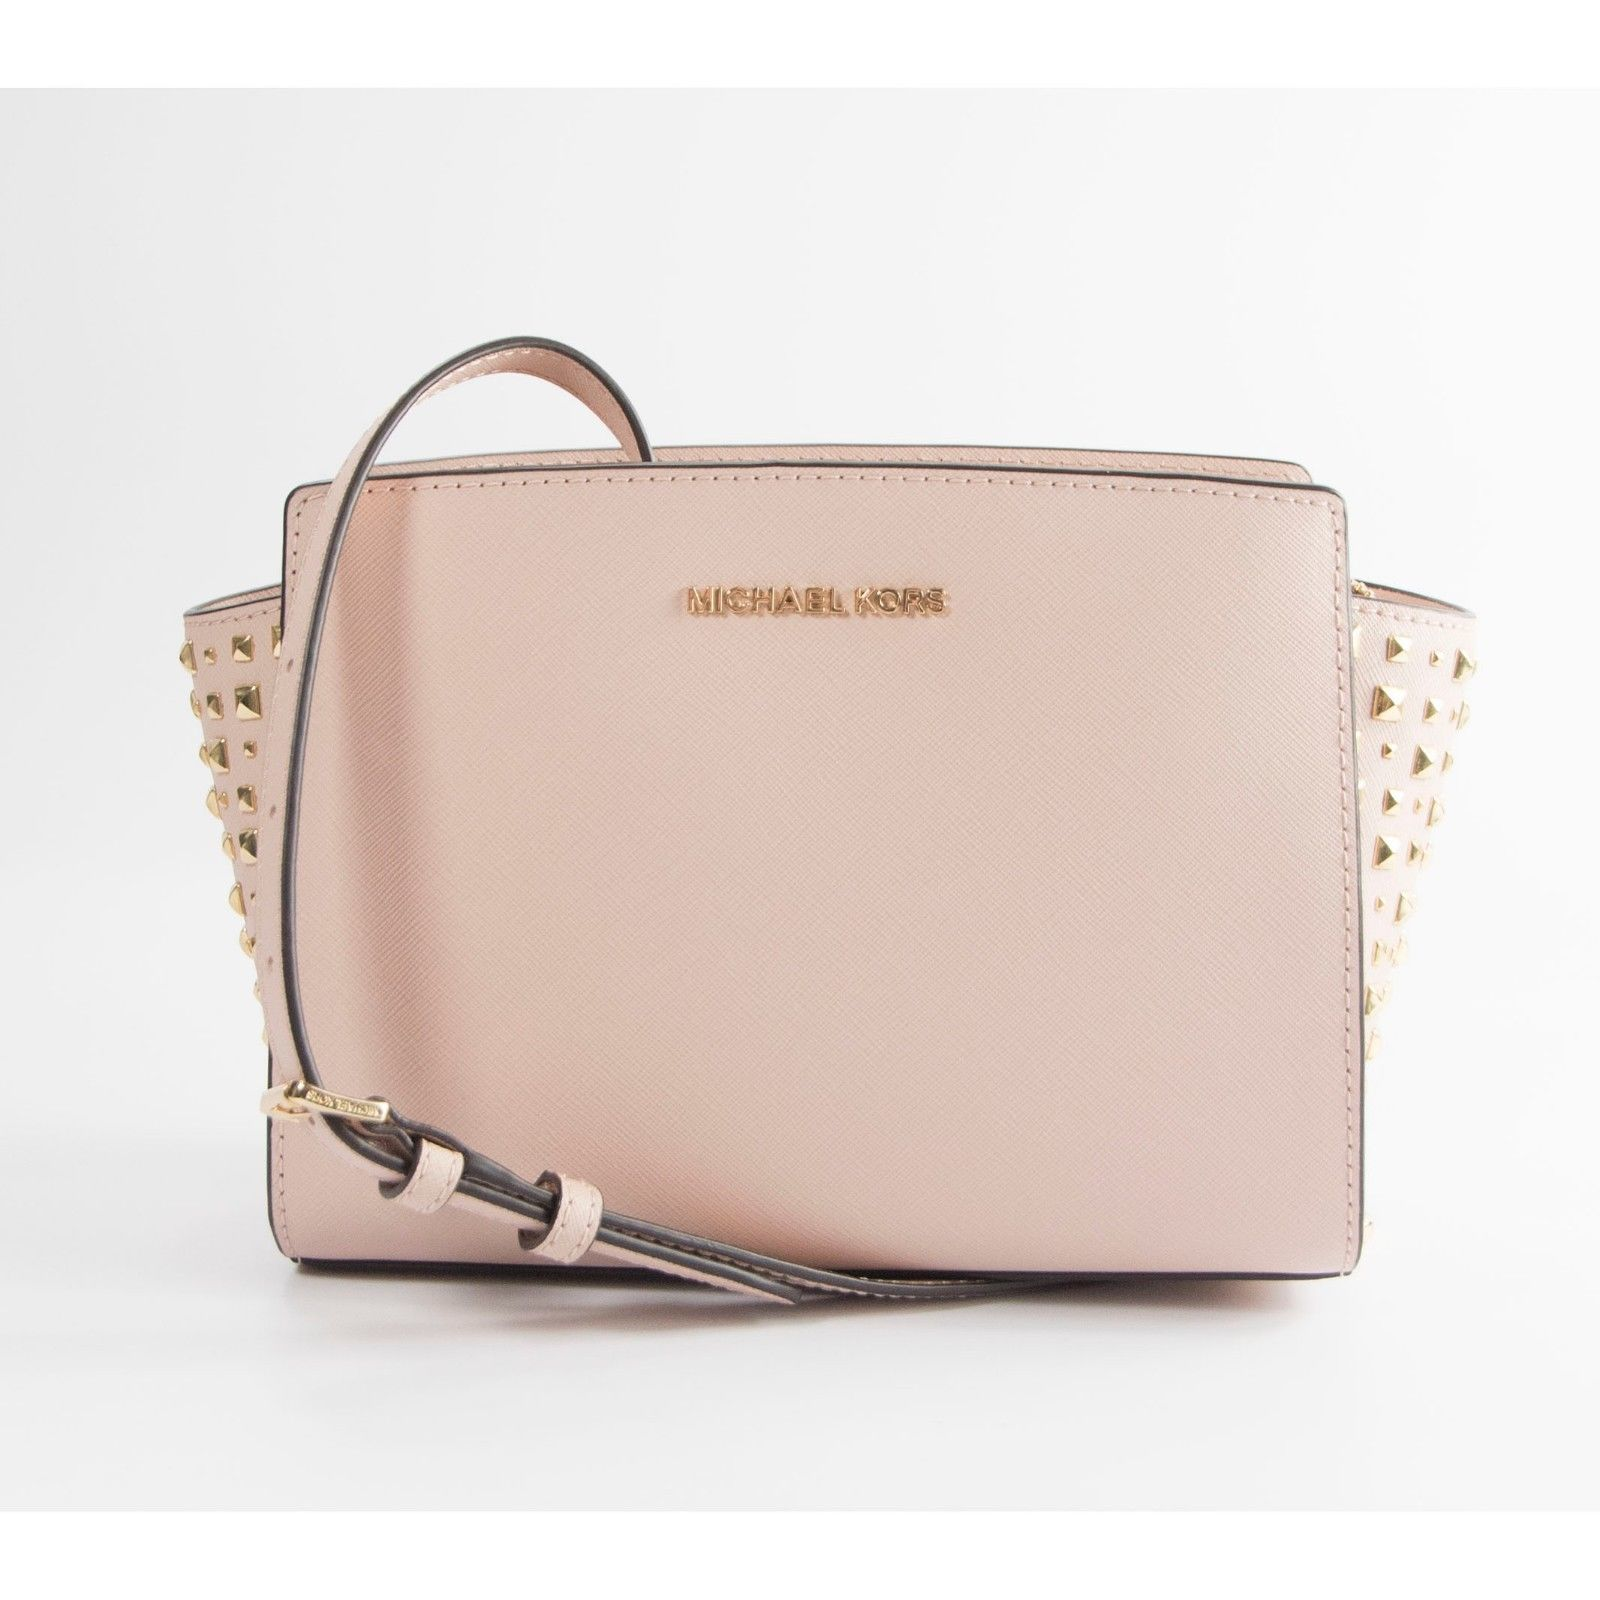 e7ecb668abdf Michael Kors Ballet Studded Saffiano Leather Selma Medium Cross Body Bag NWT  - $125.81